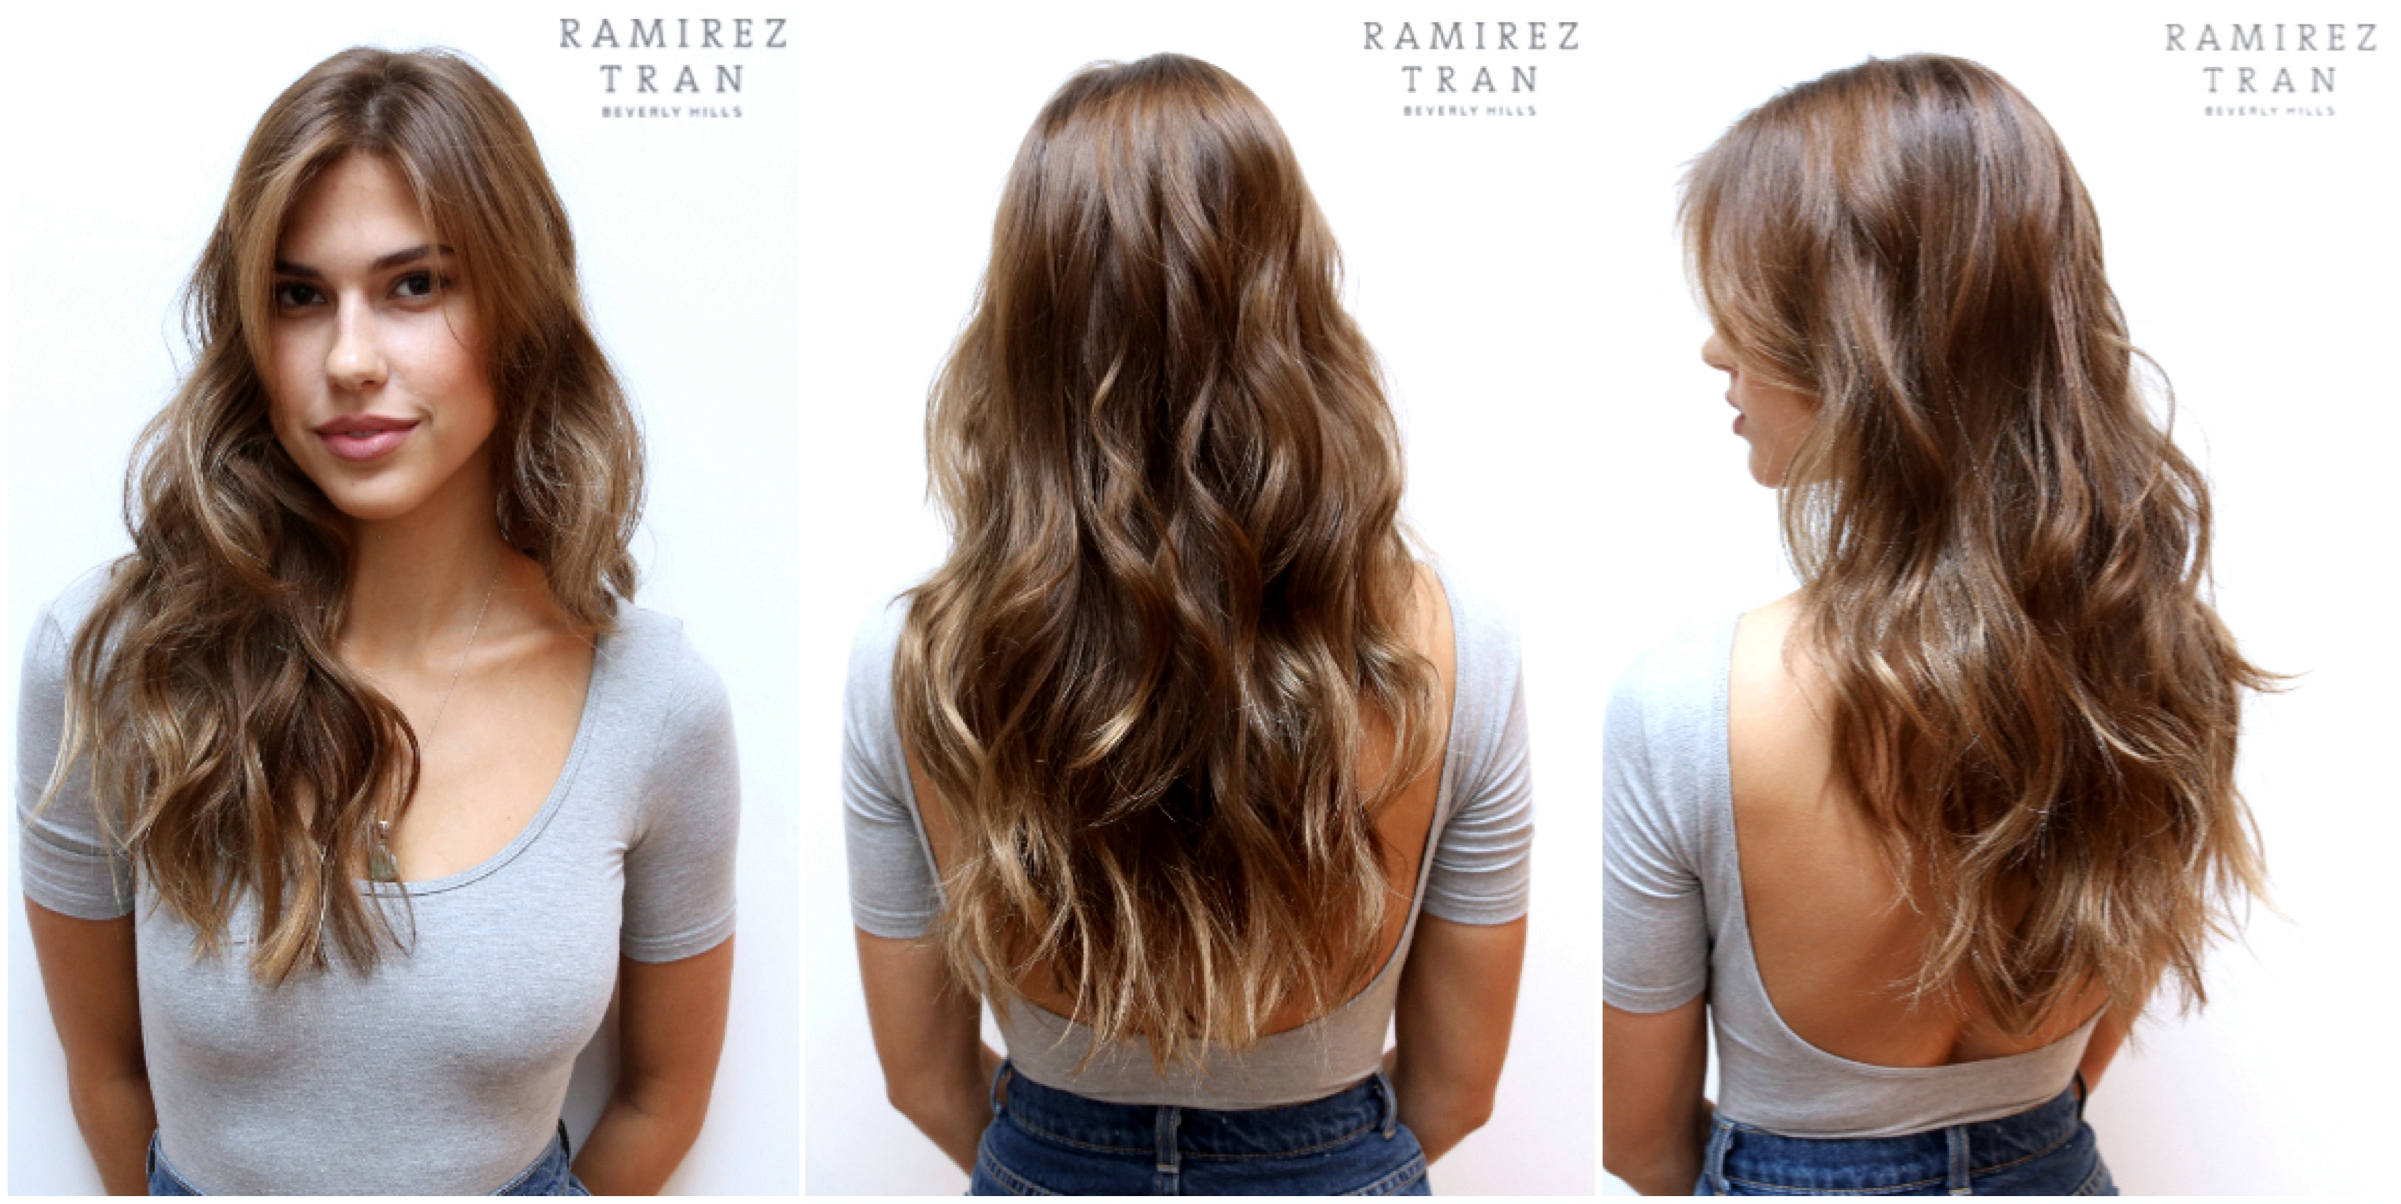 Color Transformation Archives Page 33 Of 62 Ramirez Tran Salon